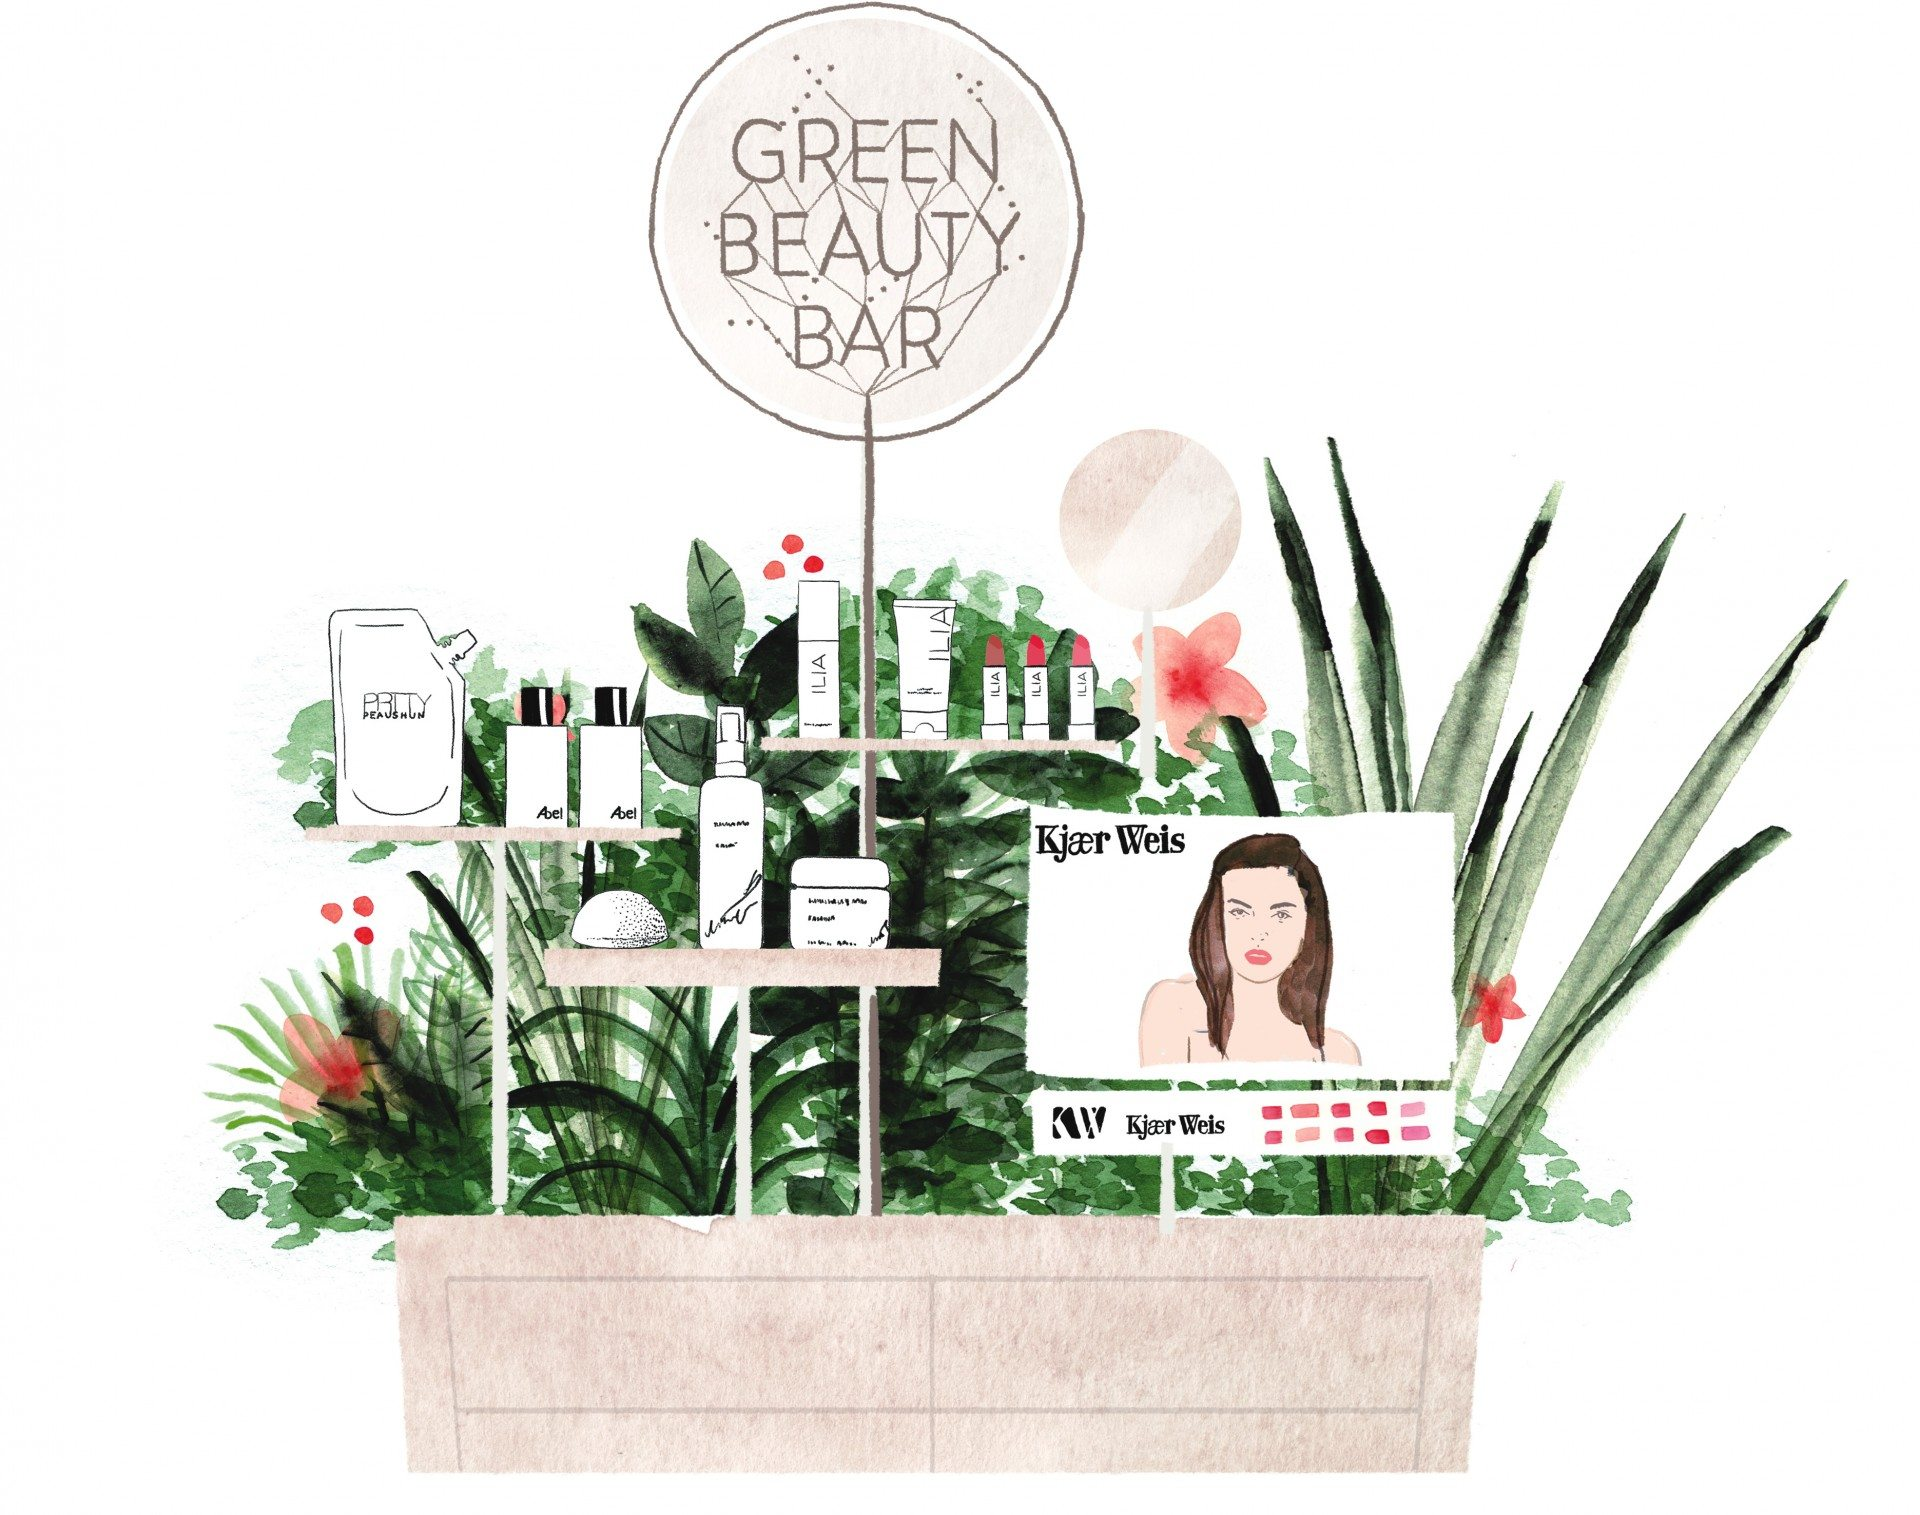 Green Beauty Bar - ORganic & Natural Cosmetics / Makeup